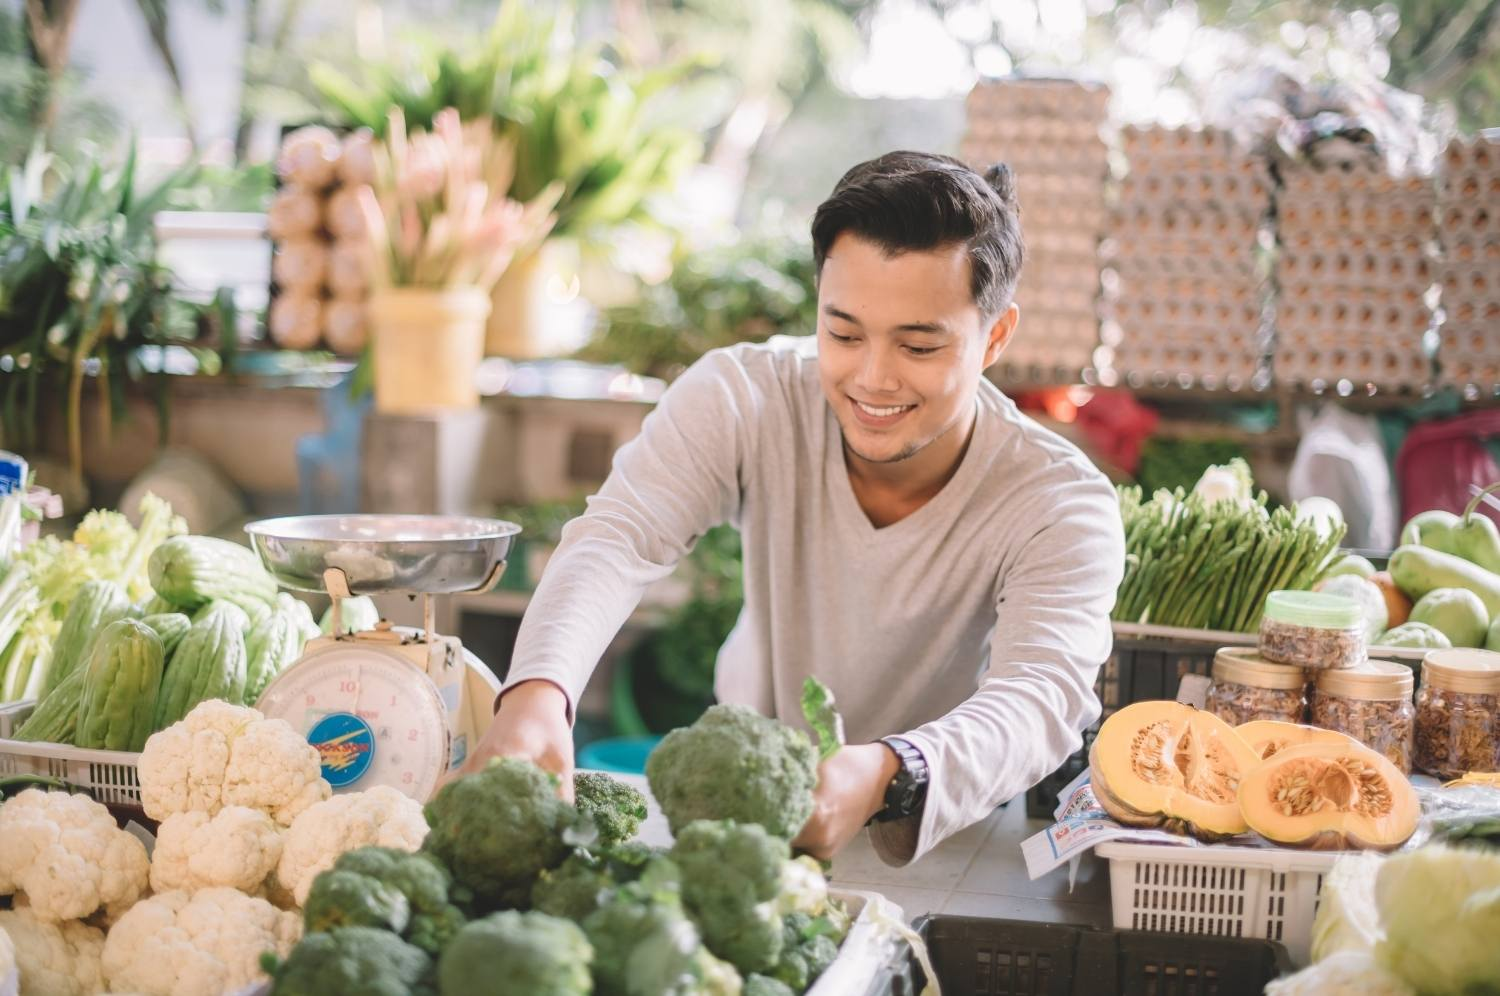 Happy grocery owner arraging his vegtables getting ready to open business